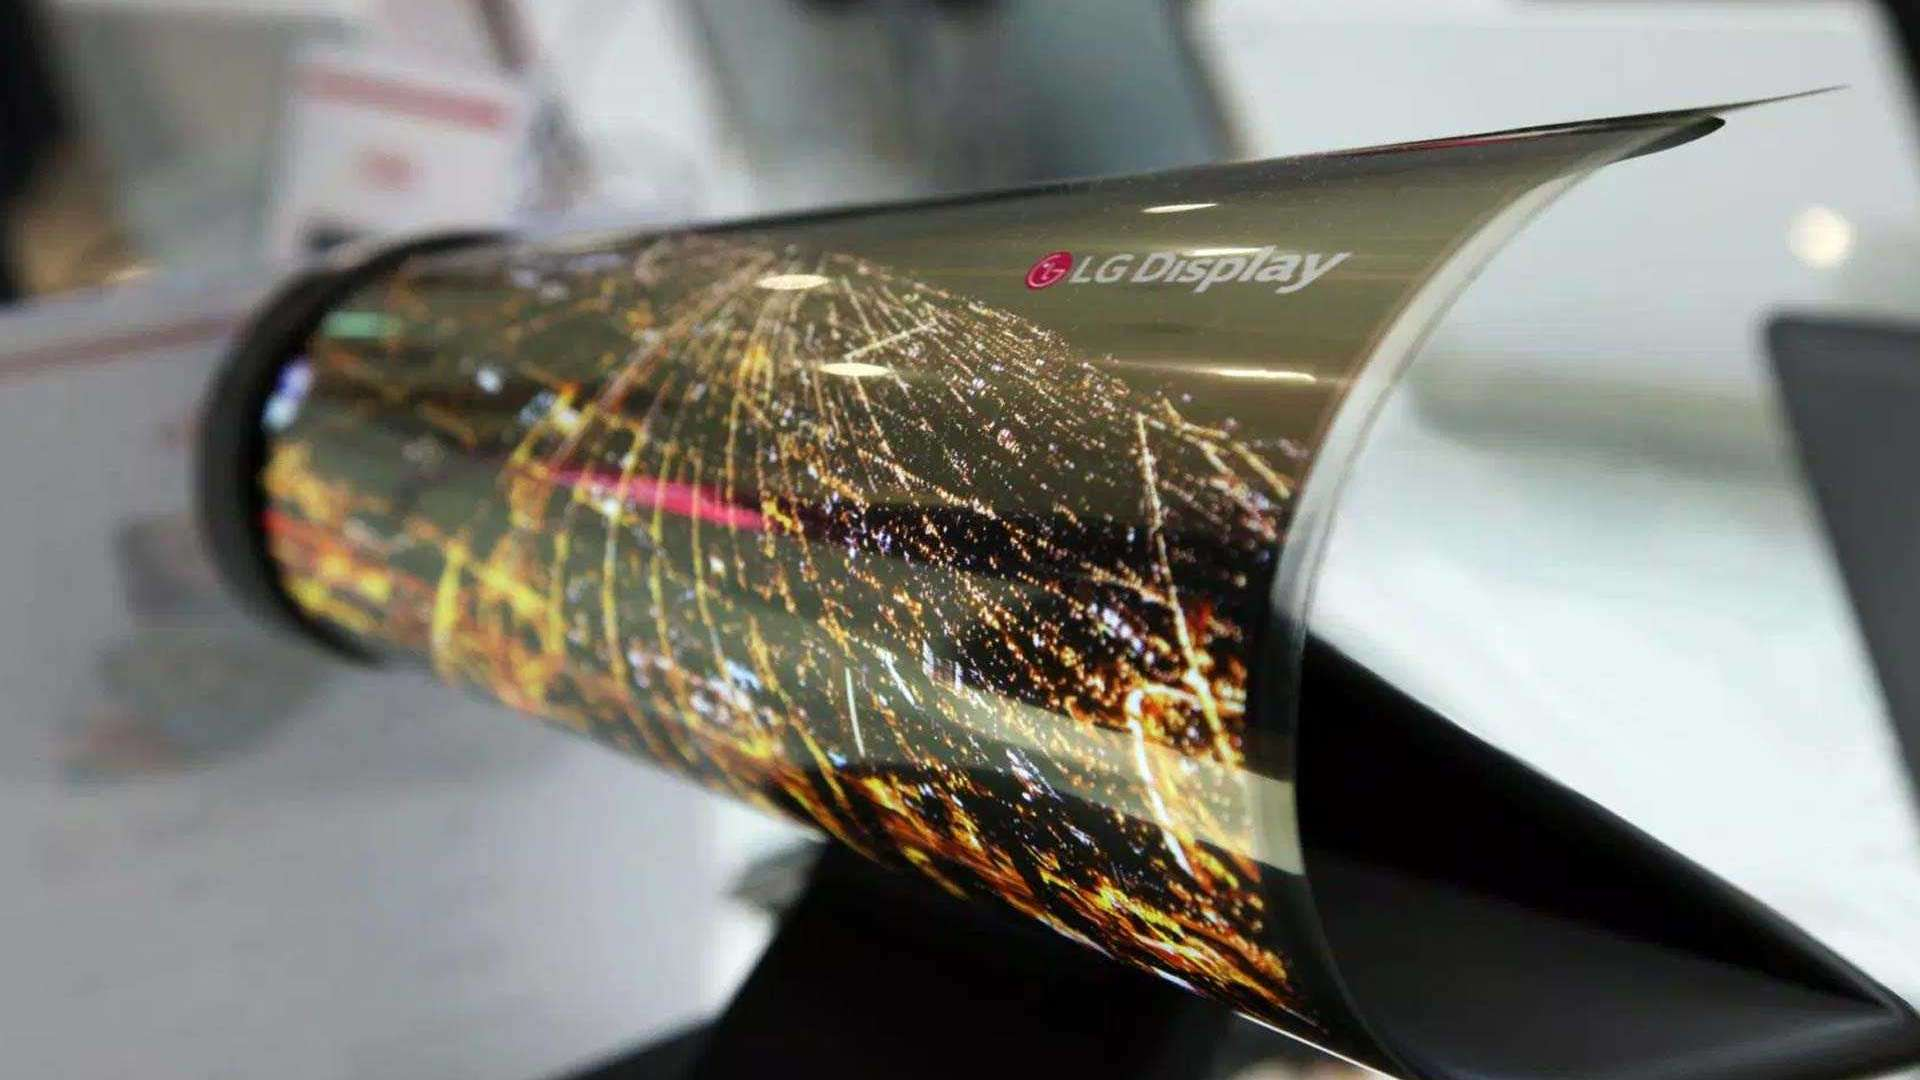 Panel makers such as LG are making flexible displays